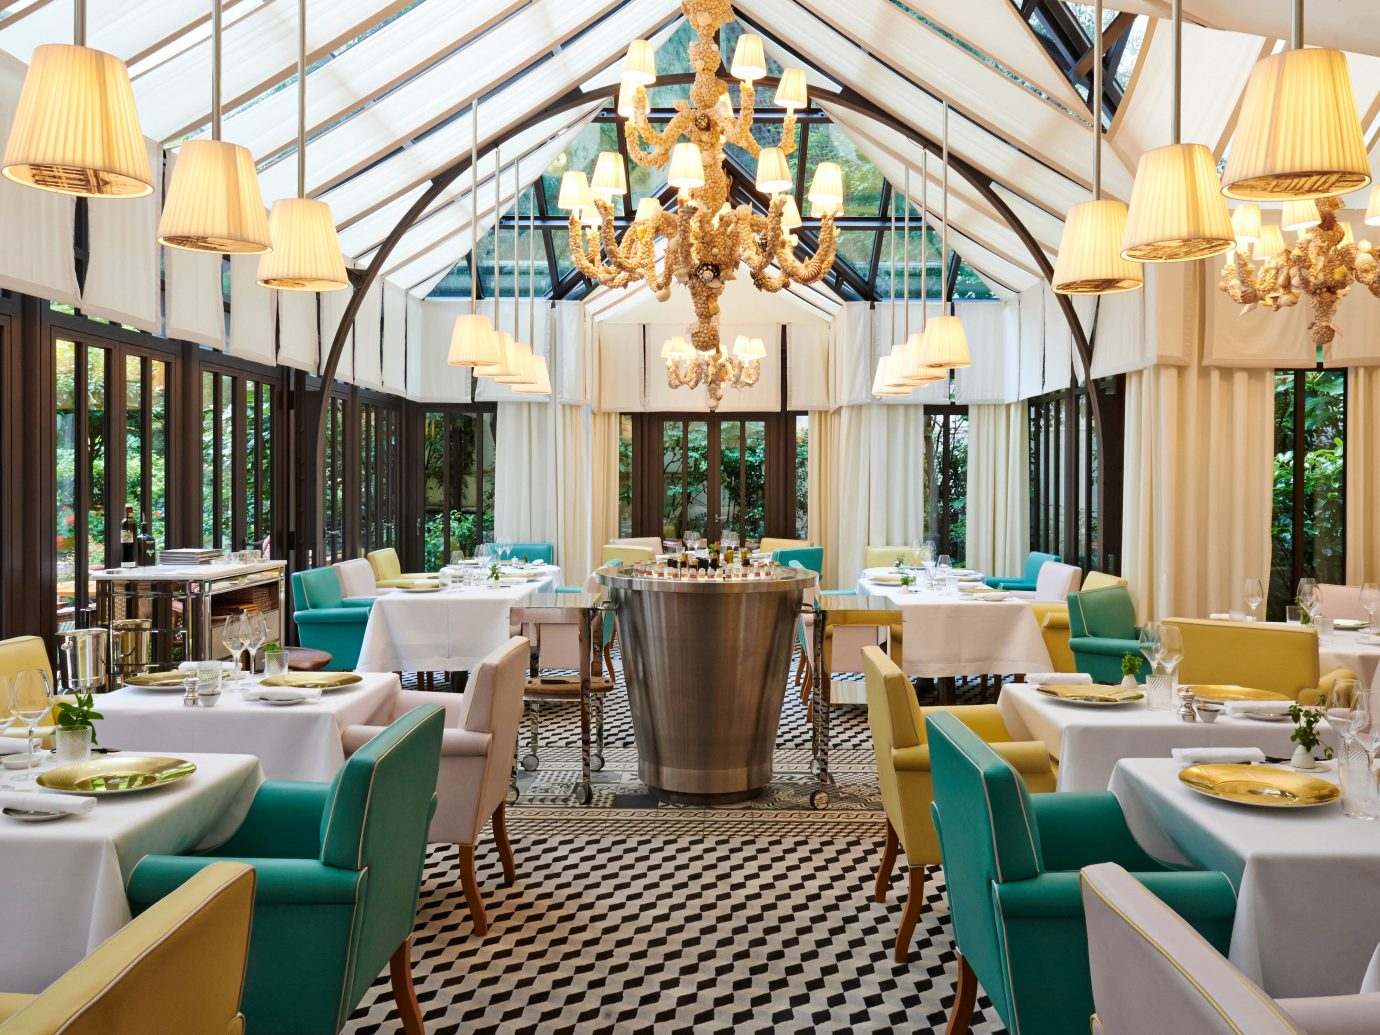 Dining Drink Eat France Hotels Offbeat Paris Trip Ideas table chair green indoor room meal restaurant Resort function hall estate interior design area furniture several